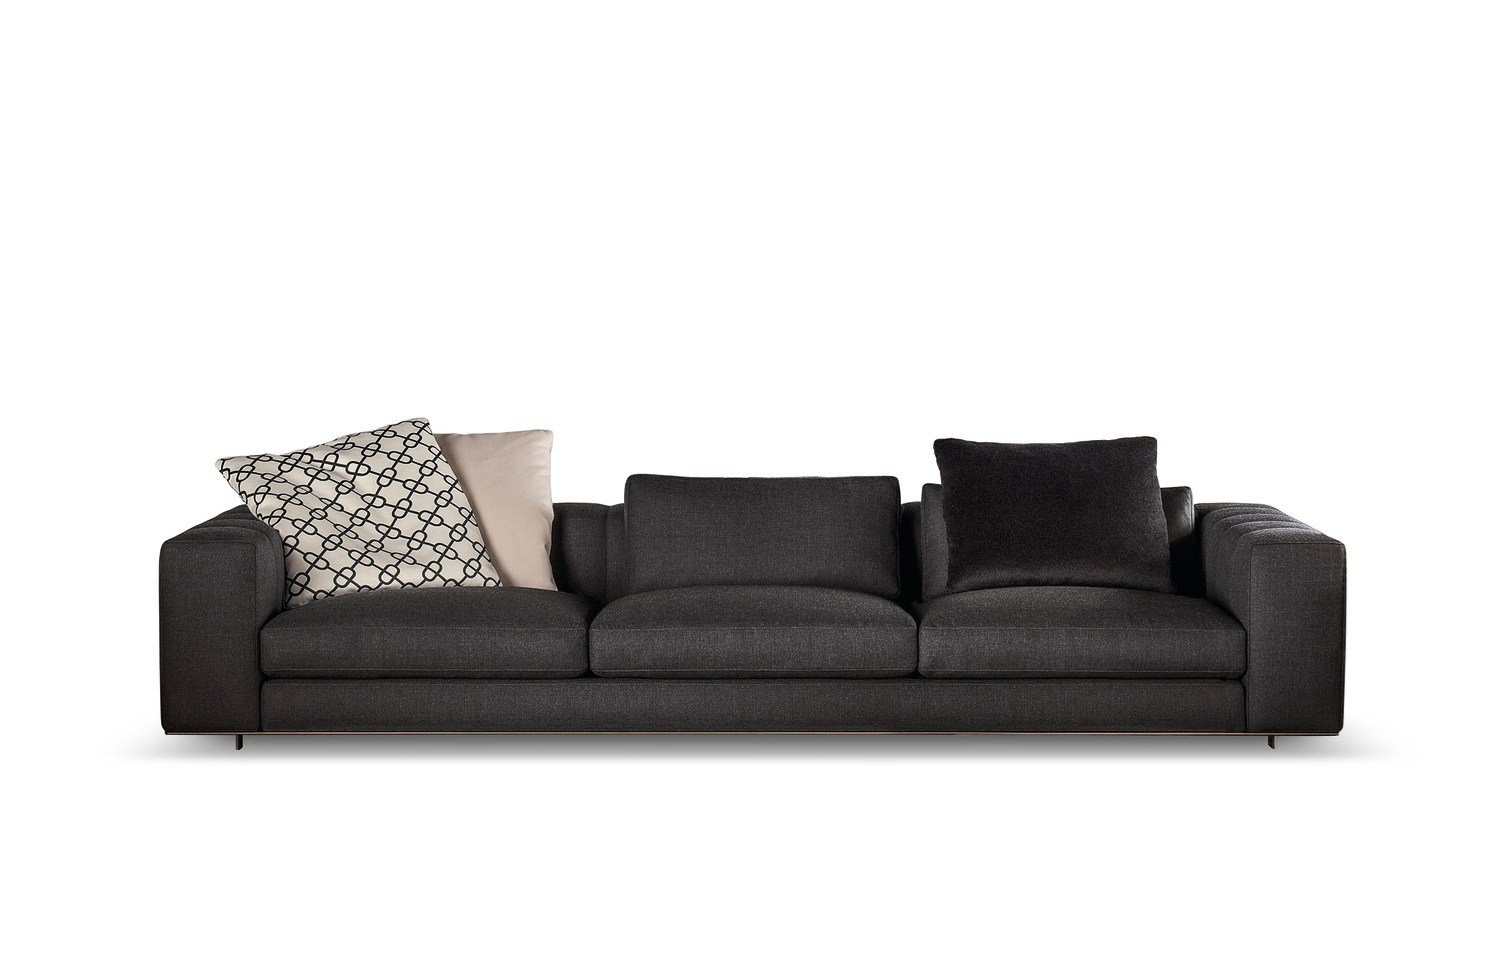 sofa freeman duvet by minotti design rodolfo dordoni. Black Bedroom Furniture Sets. Home Design Ideas